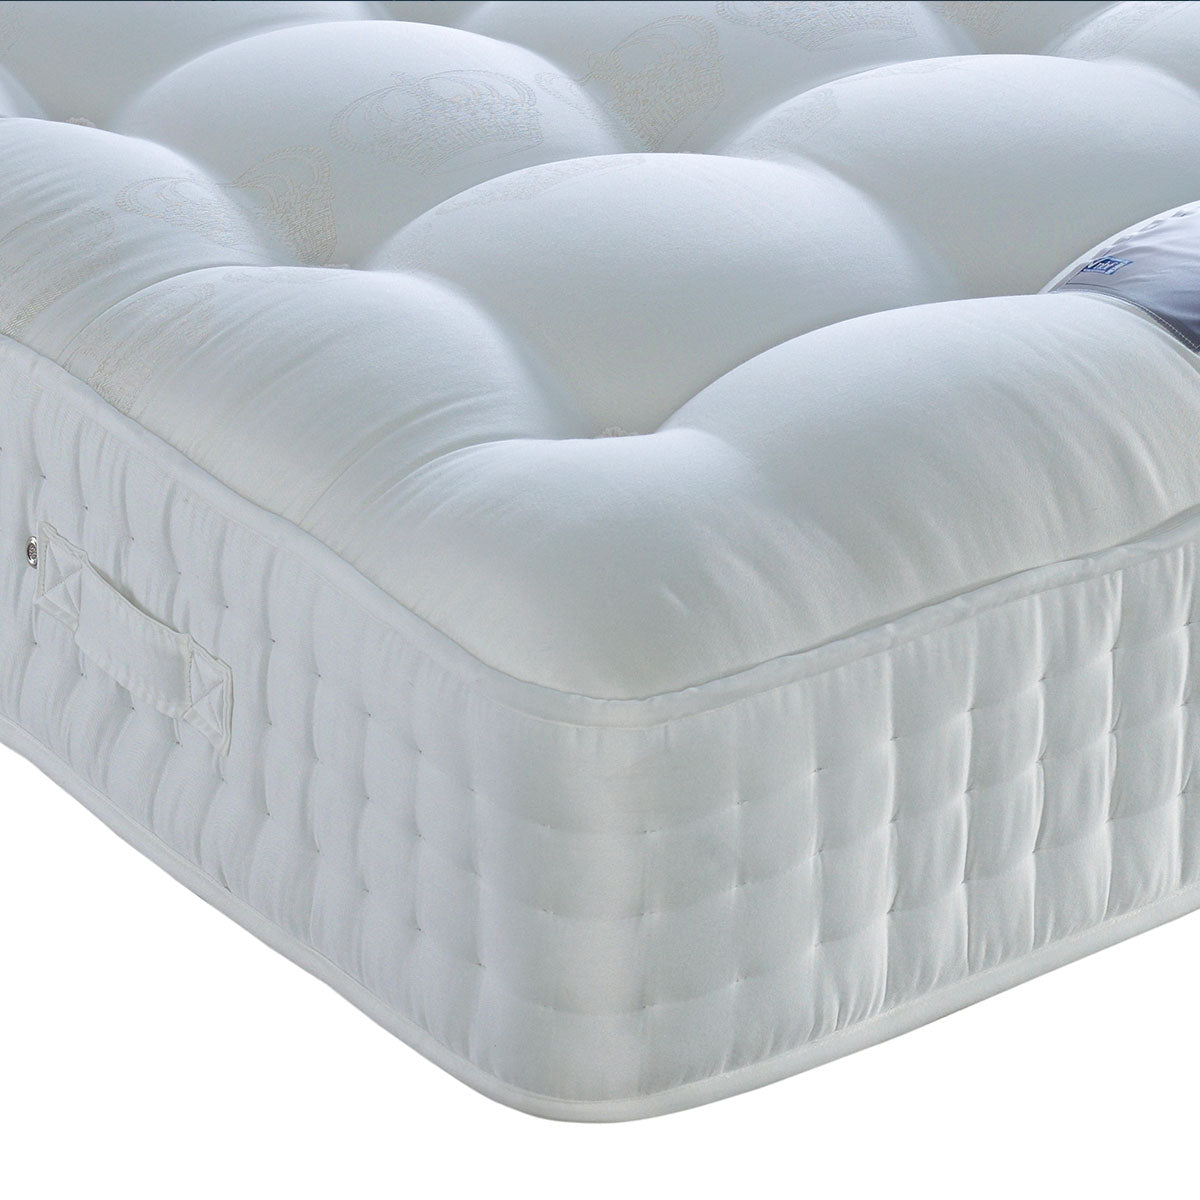 Royal Crown Natural 1000 Mattress 30cm Depth - Medium Firm